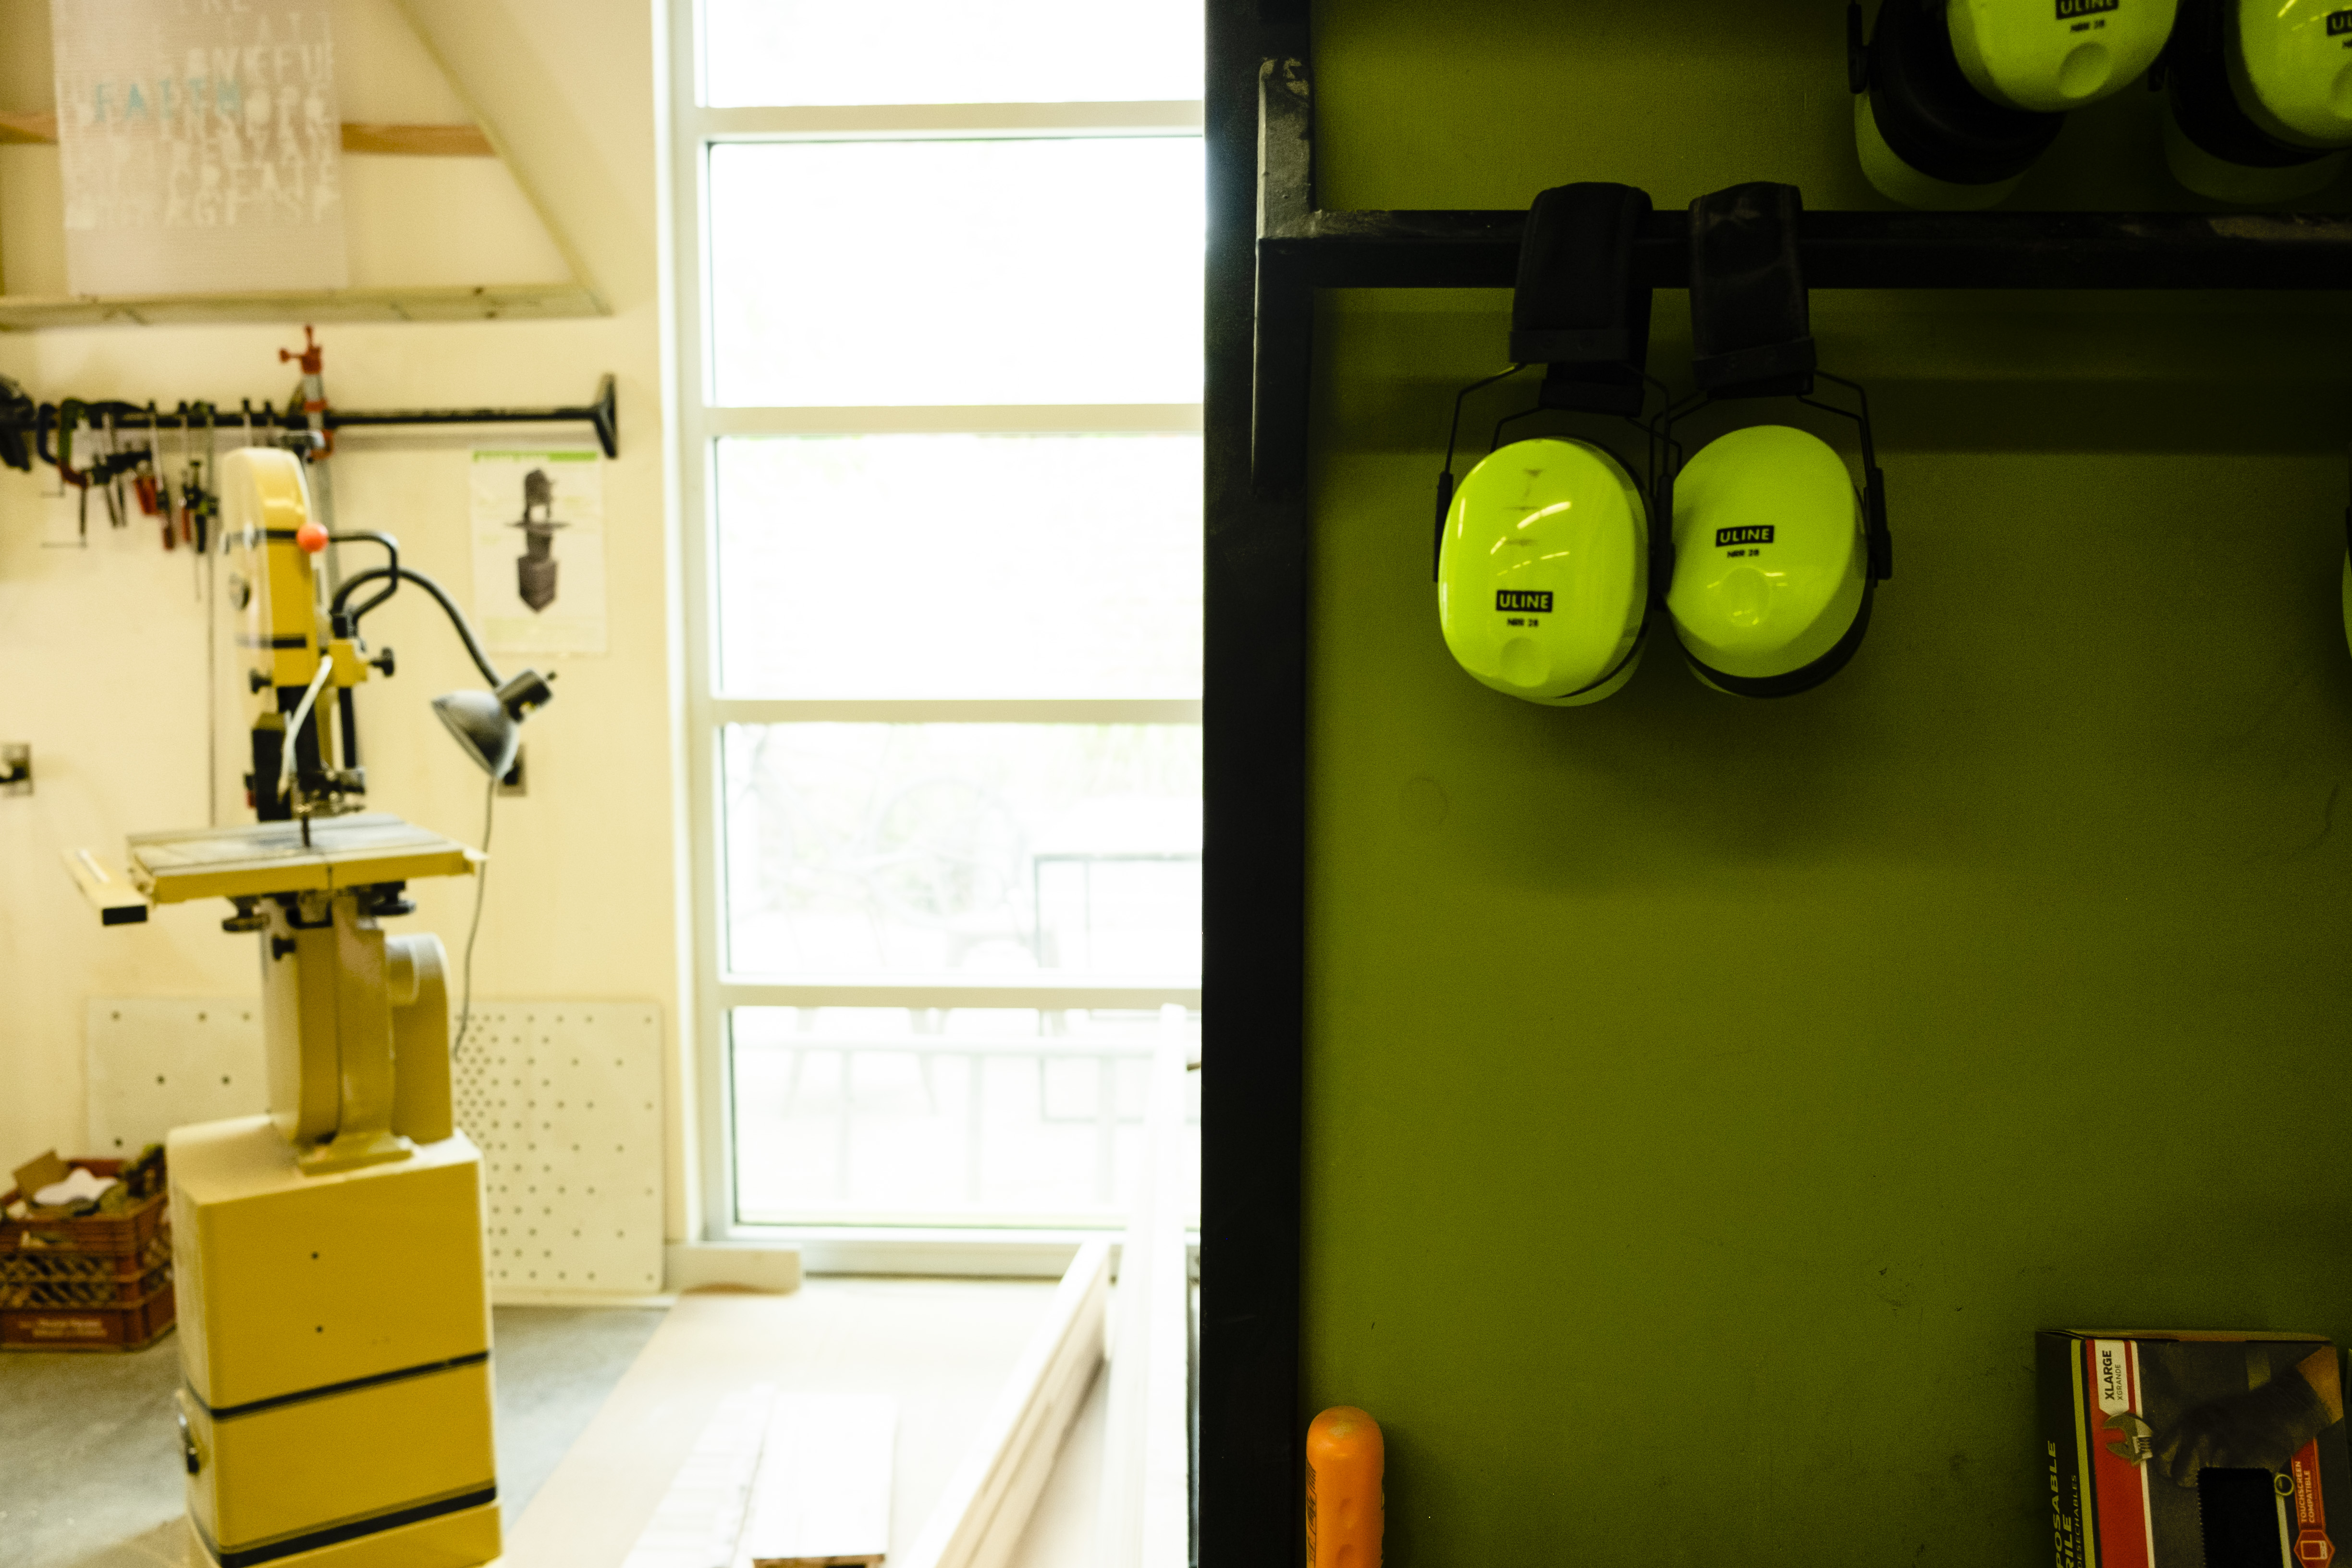 view inside a shop with a large cutting machine in the background and a window letting in light and in the foreground two sets of ear-protection earmuffs hanging on a horizontal poll